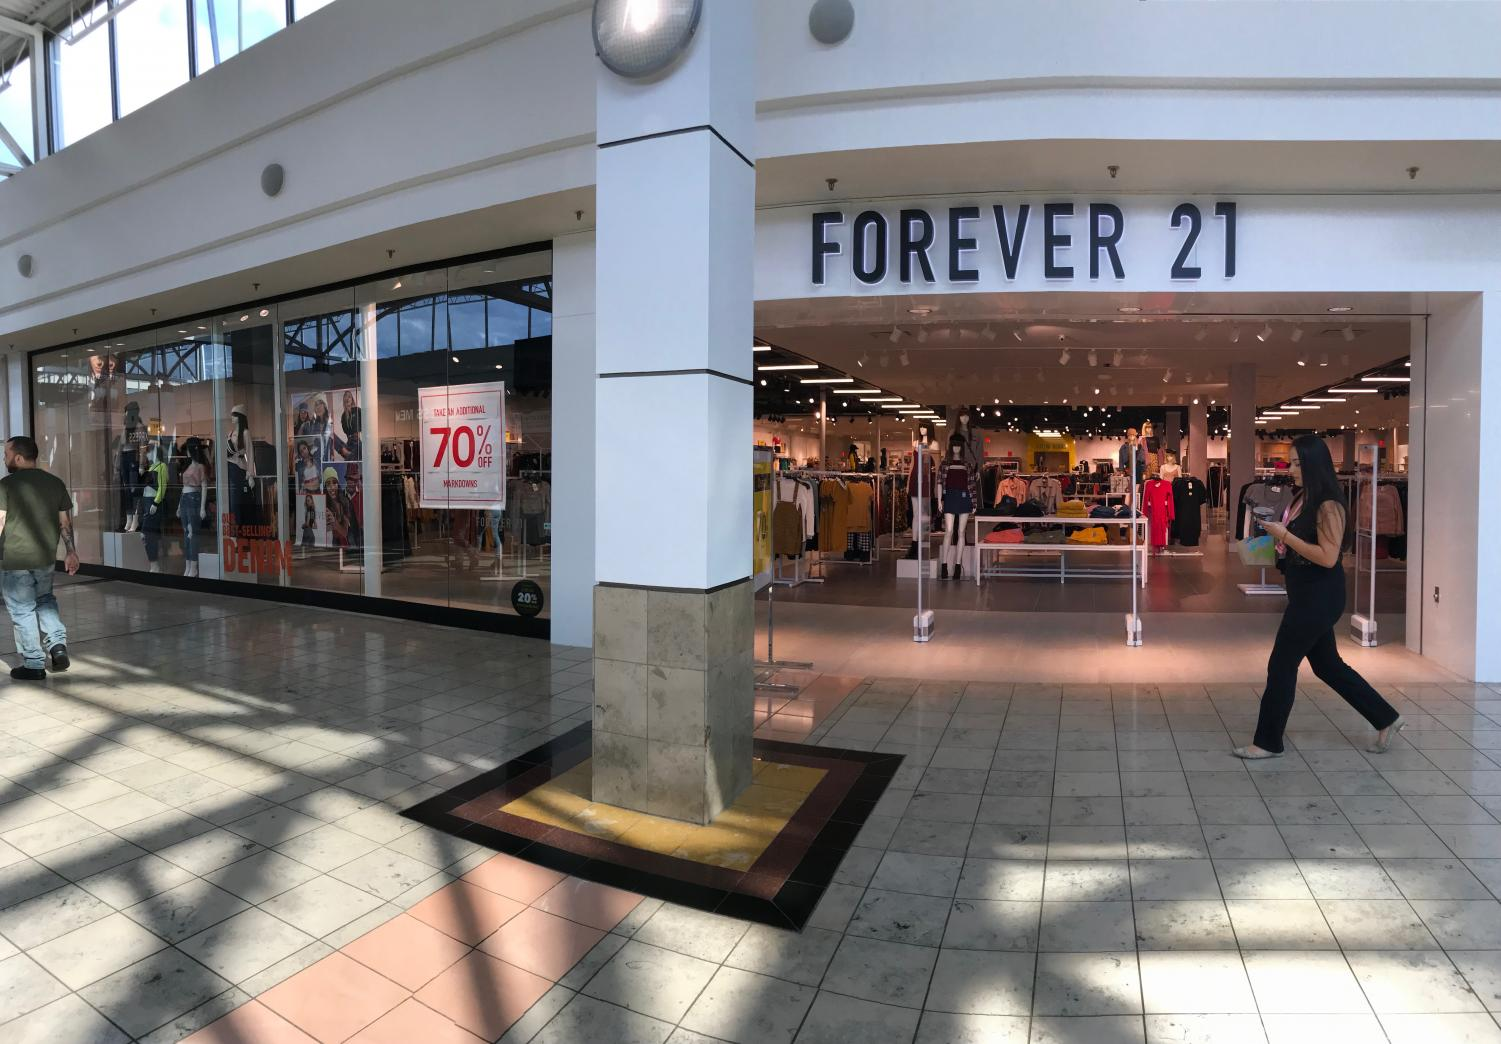 Forever 21 at the Connecticut Post Mall in which local residents of Milford and it's neighboring cities shop.